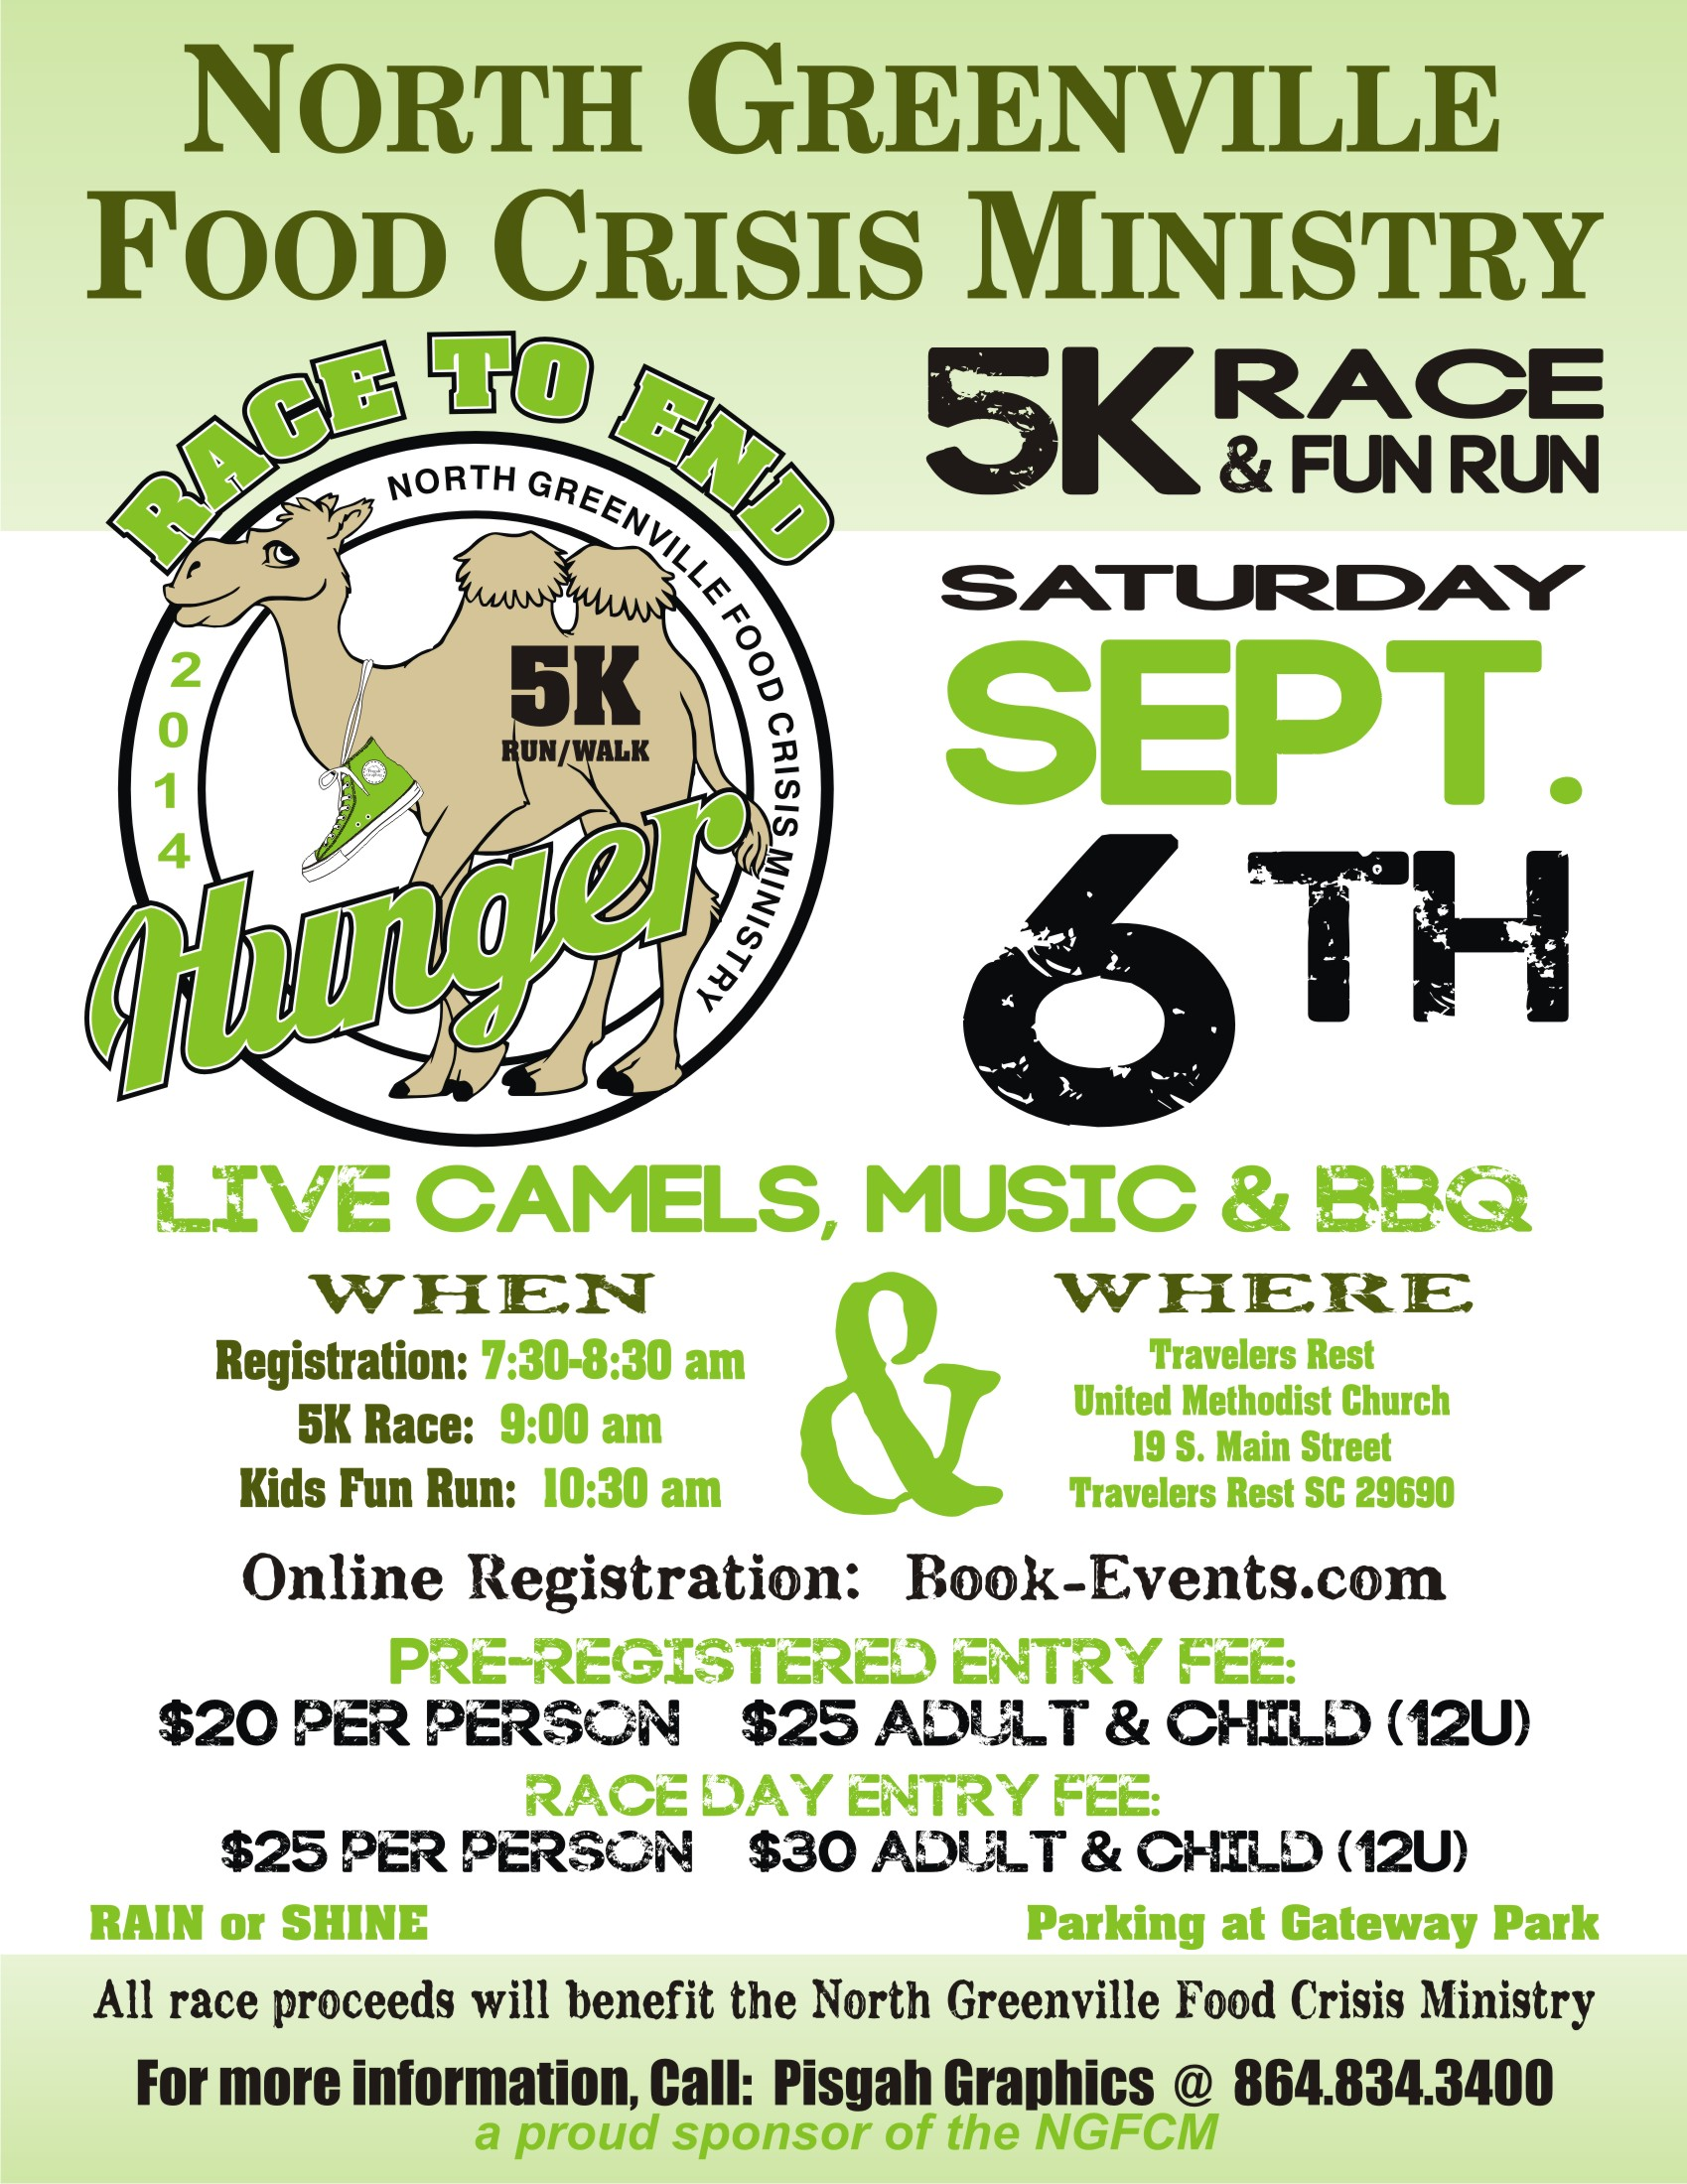 Food Crisis Ministry to hold inaugural 'Race to End Hunger' Saturday